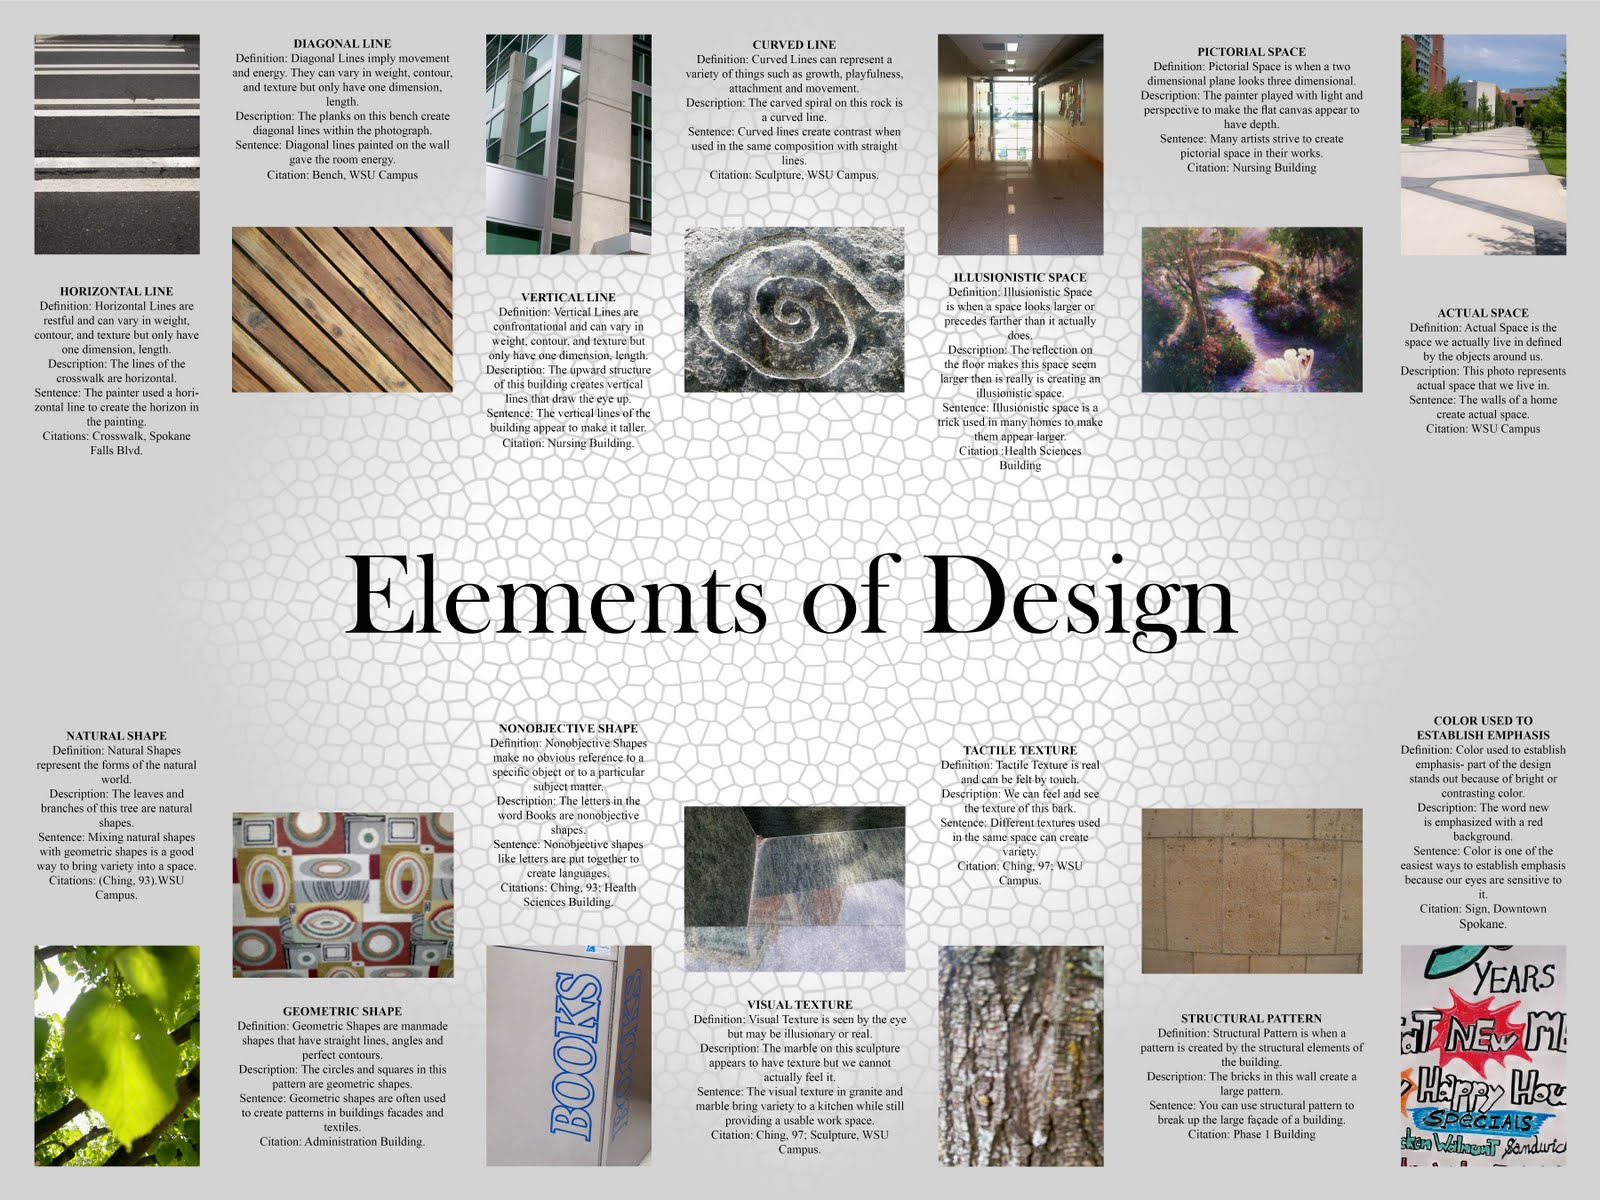 Principles Elements Of Design : Shannon stewart elements and principles of design